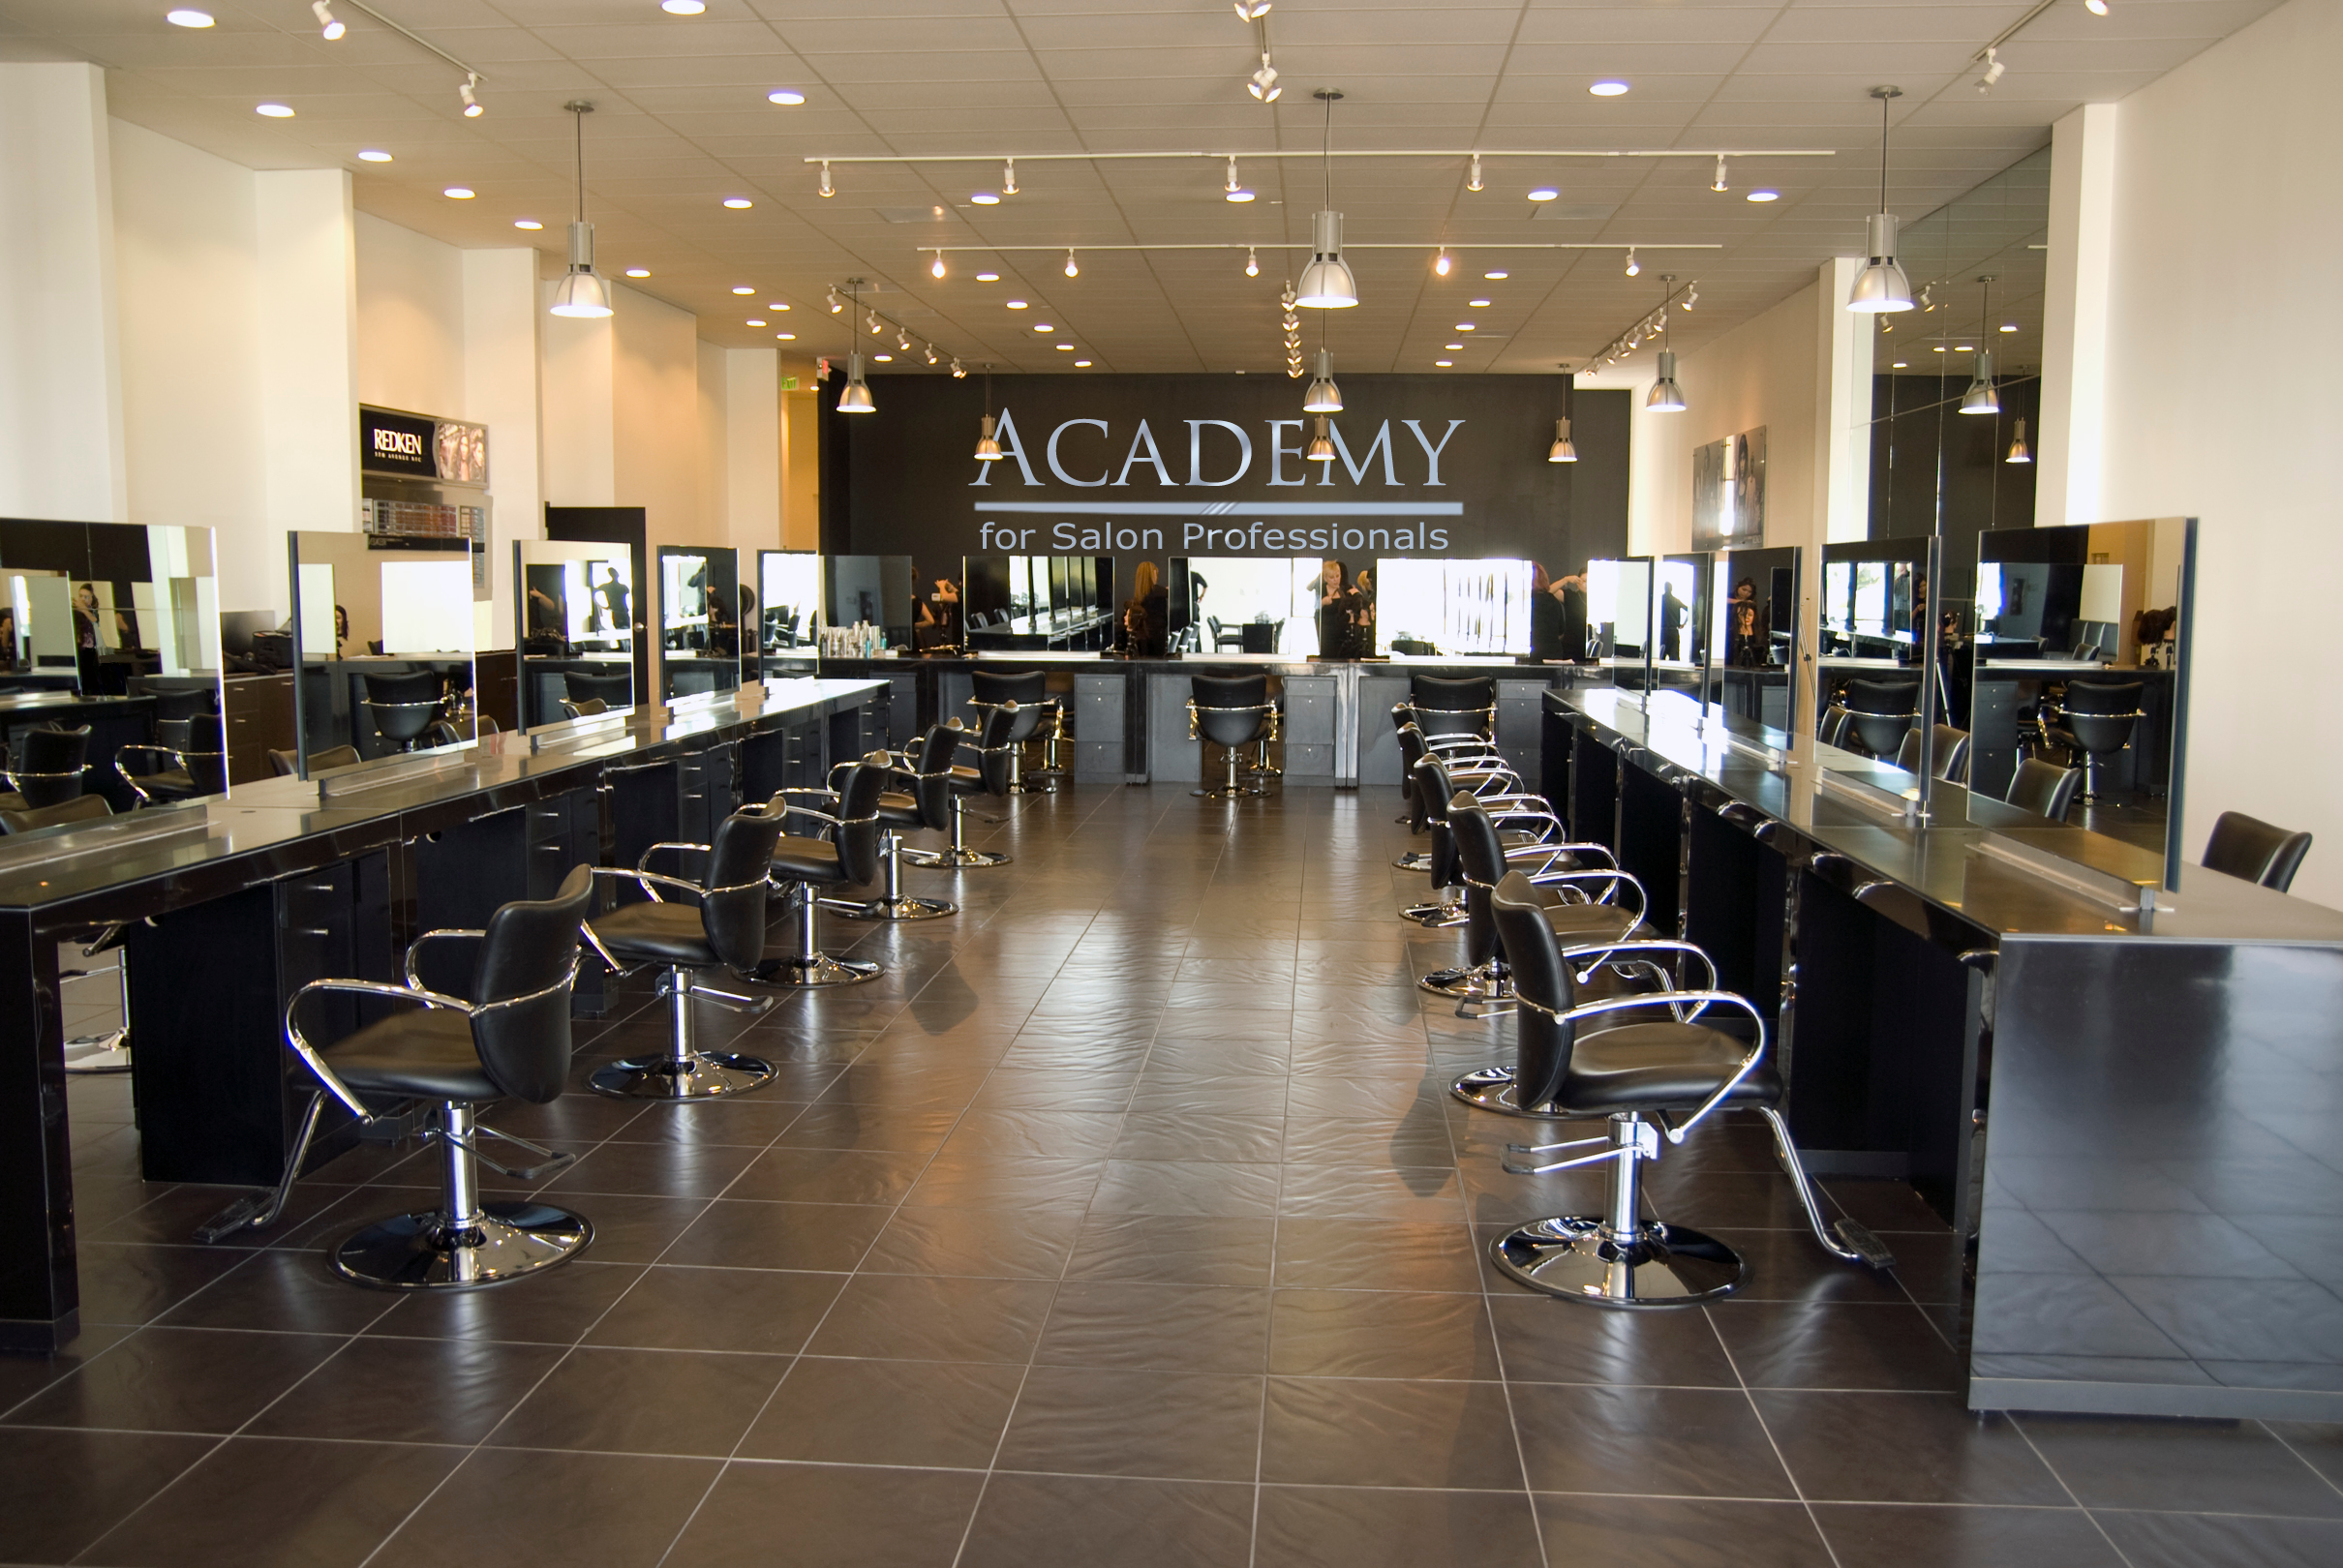 Academy for salon professionals member santa clara ca for Academy beauty salon